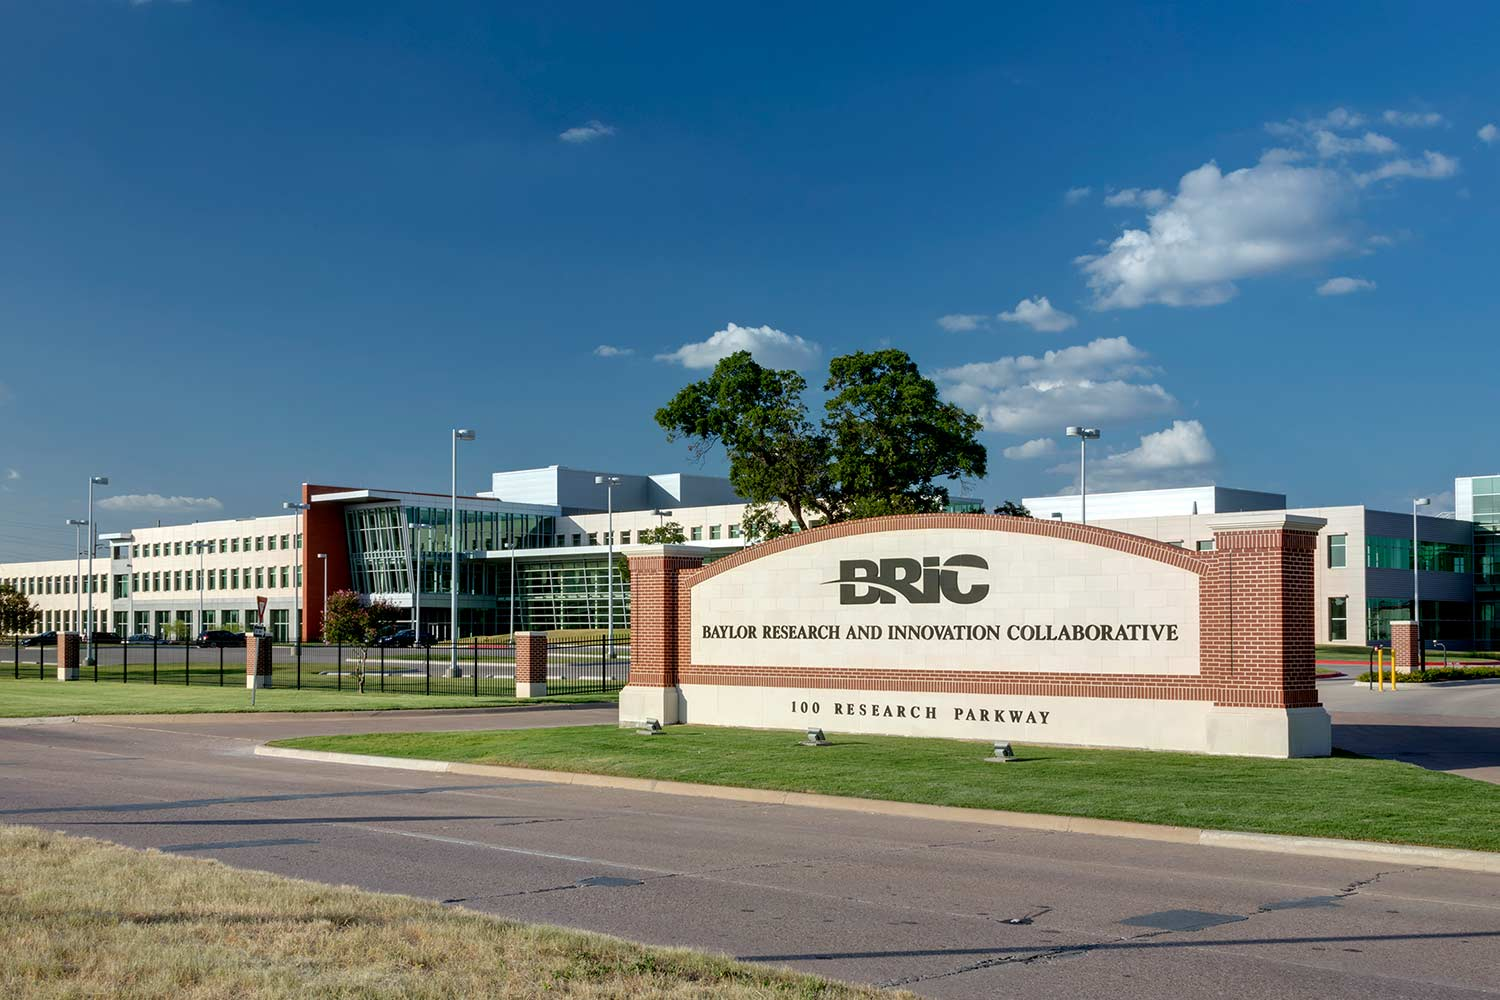 BRIC Exterior with Sign